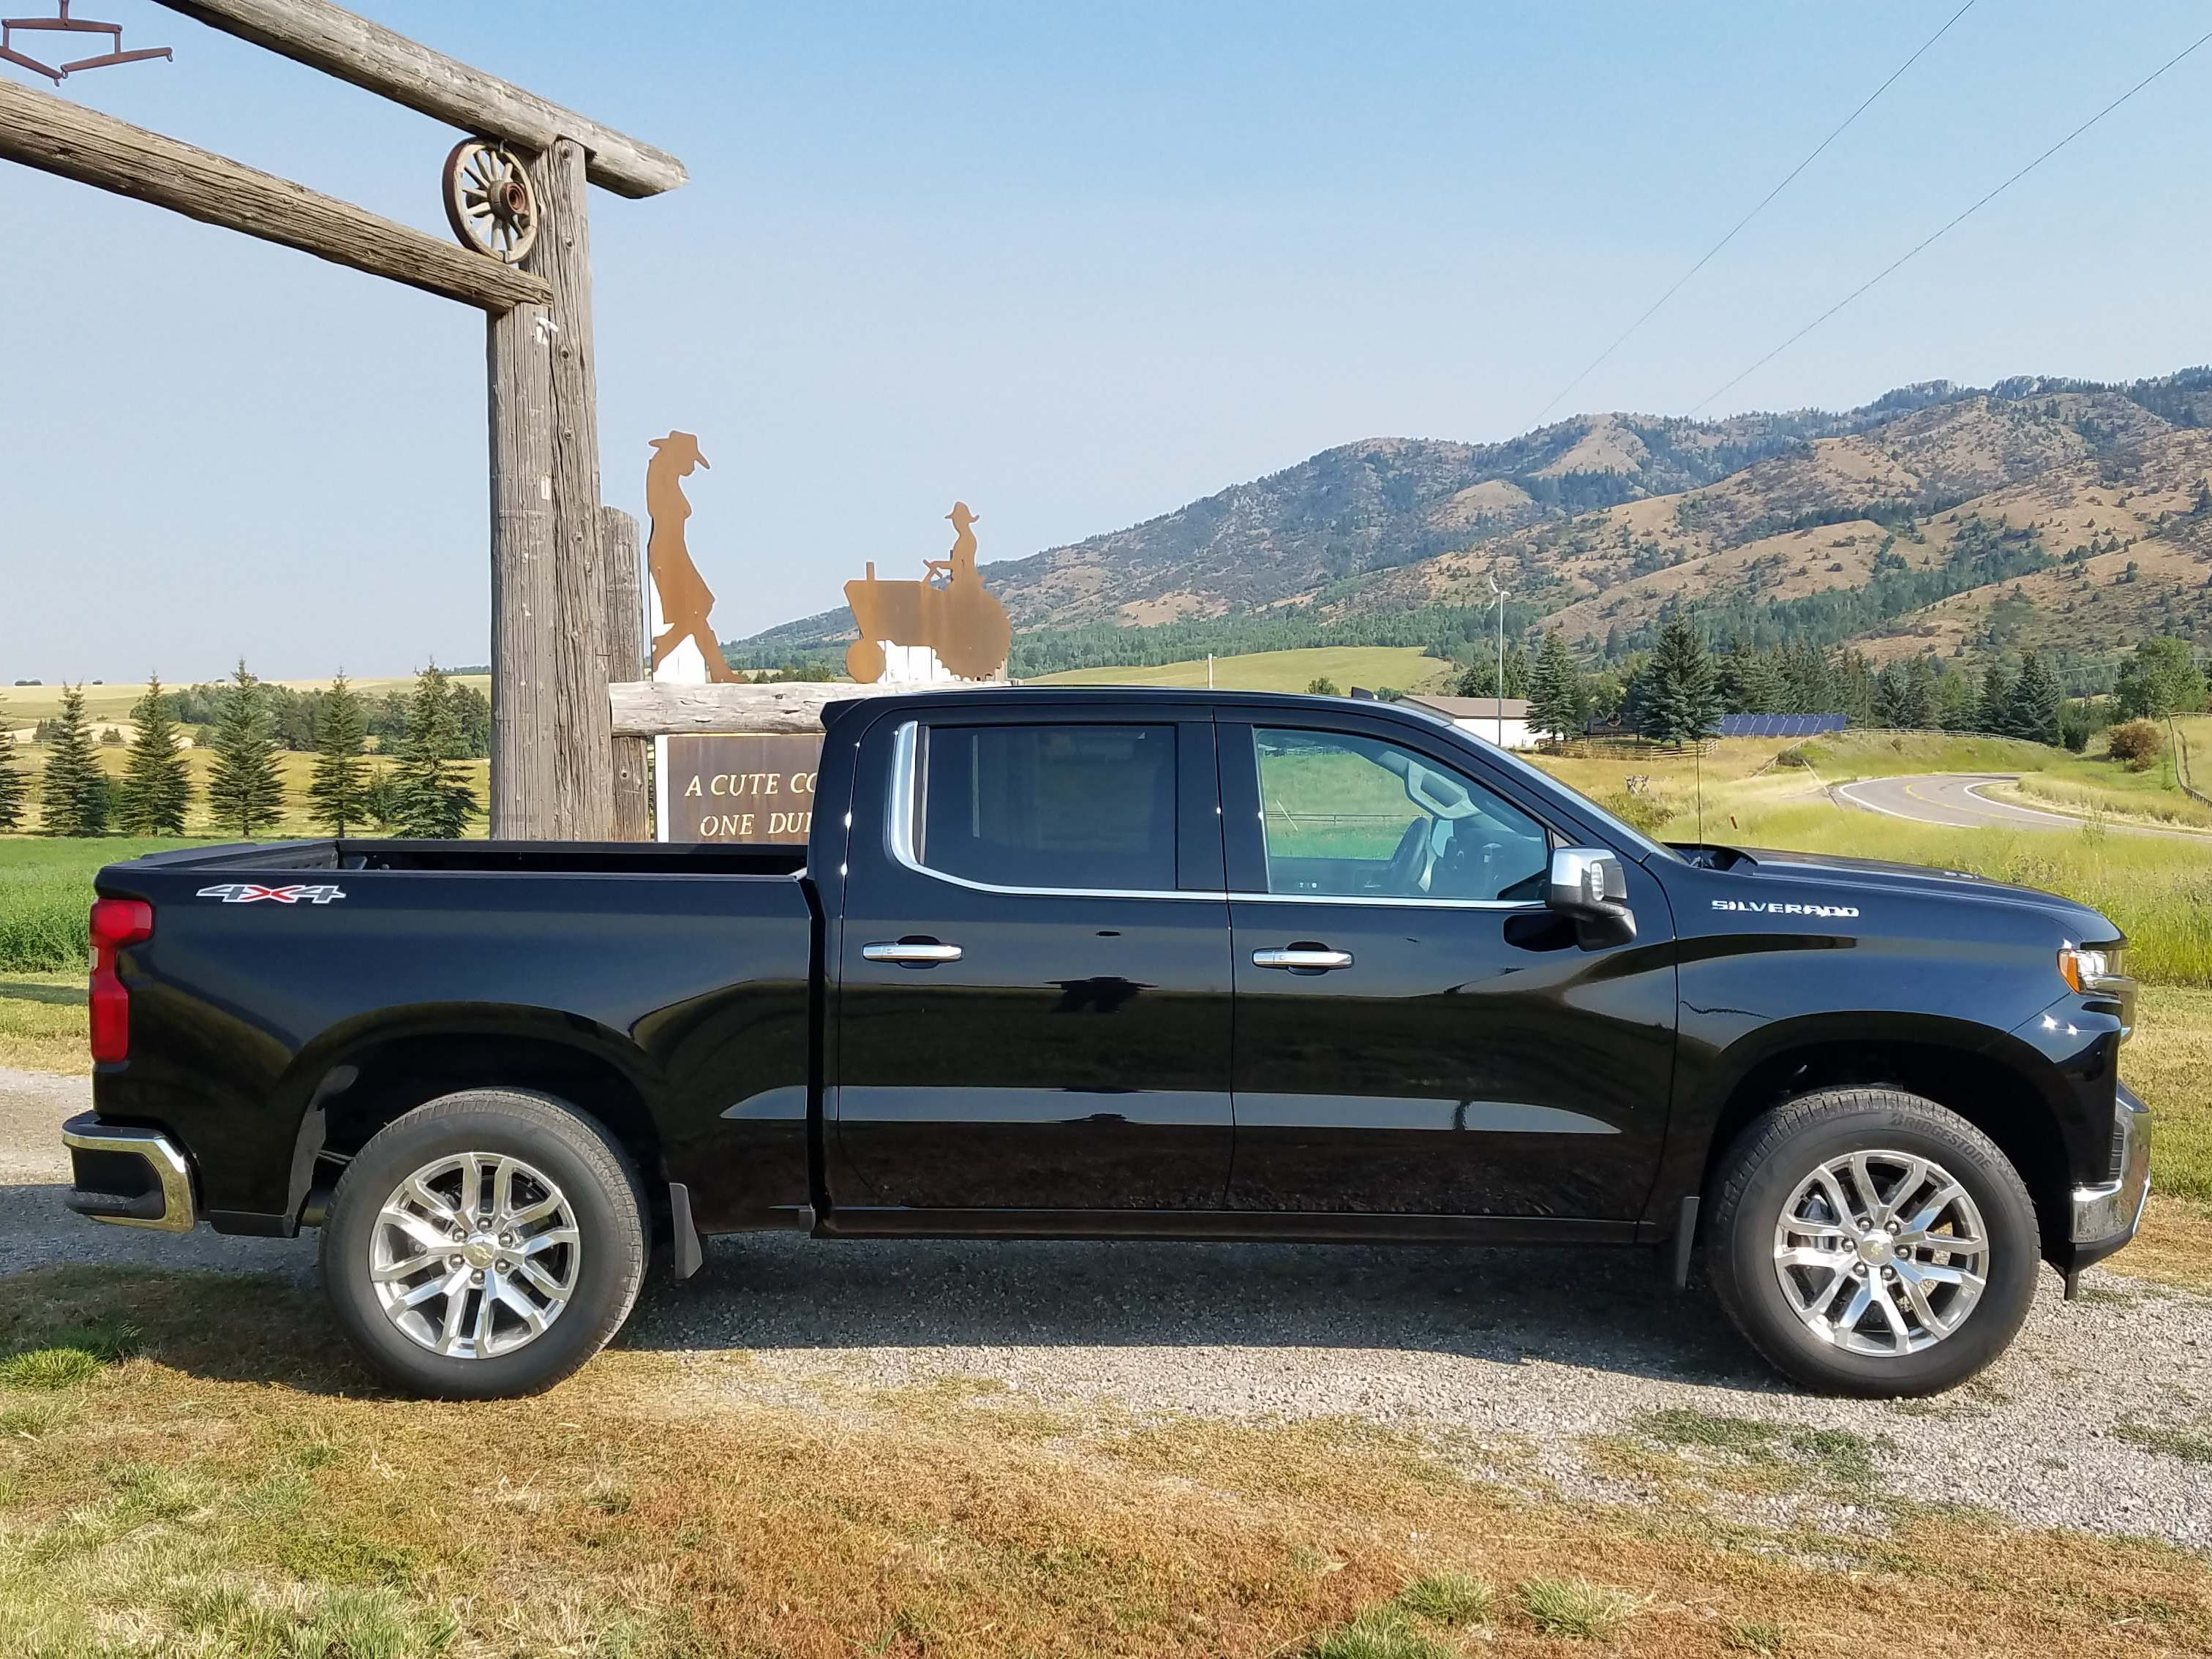 Bigger pickup. With its new chassis design, the 2019 Chevy Silverado gains three inches of rear legroom, 1 inch of length on the rear box, while saving 450 pounds.